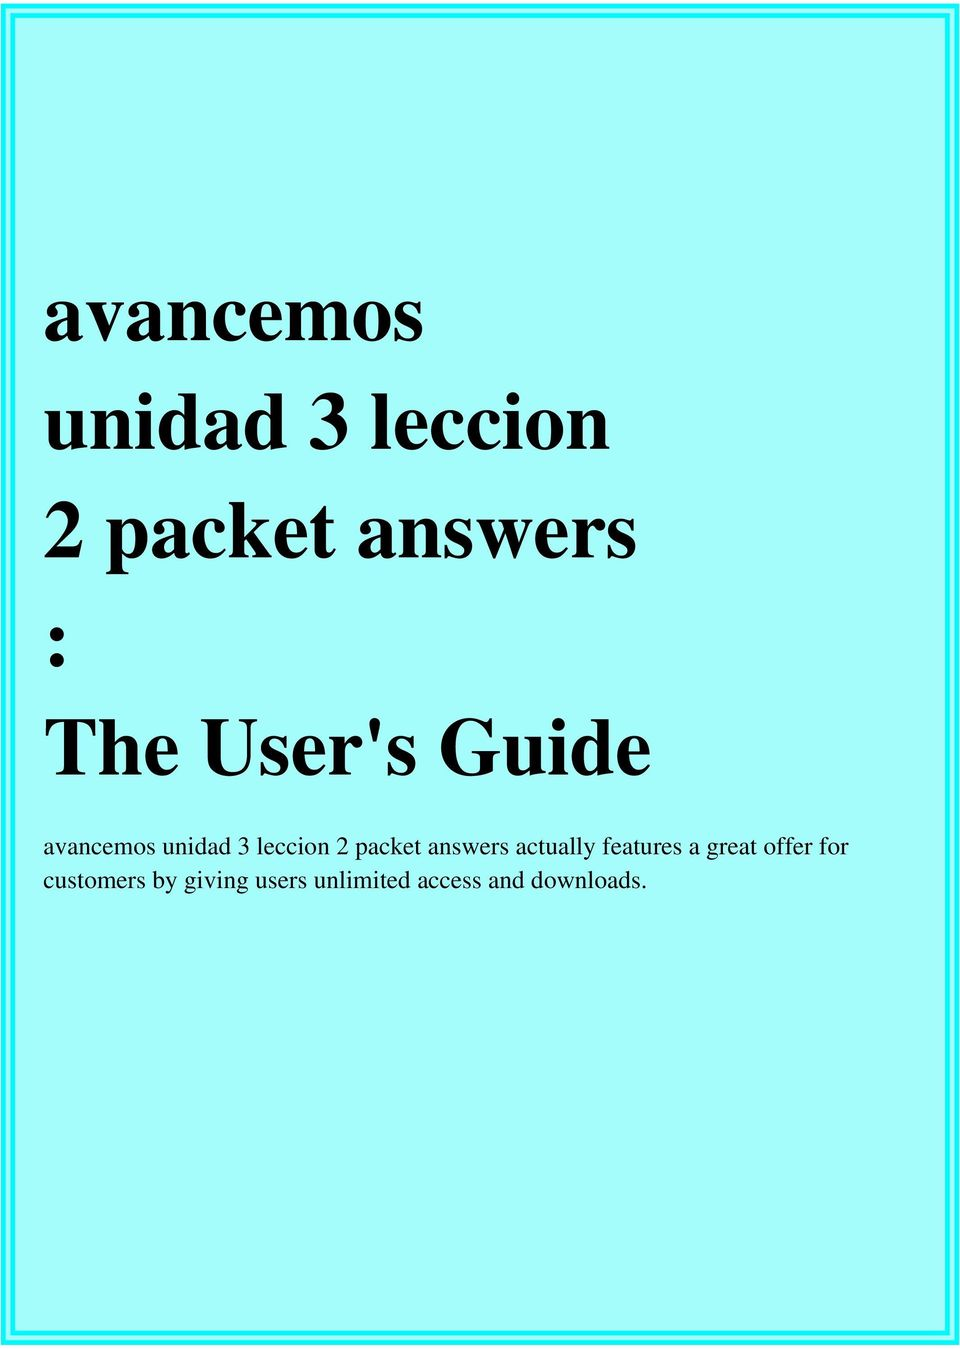 answers actually features a great offer for